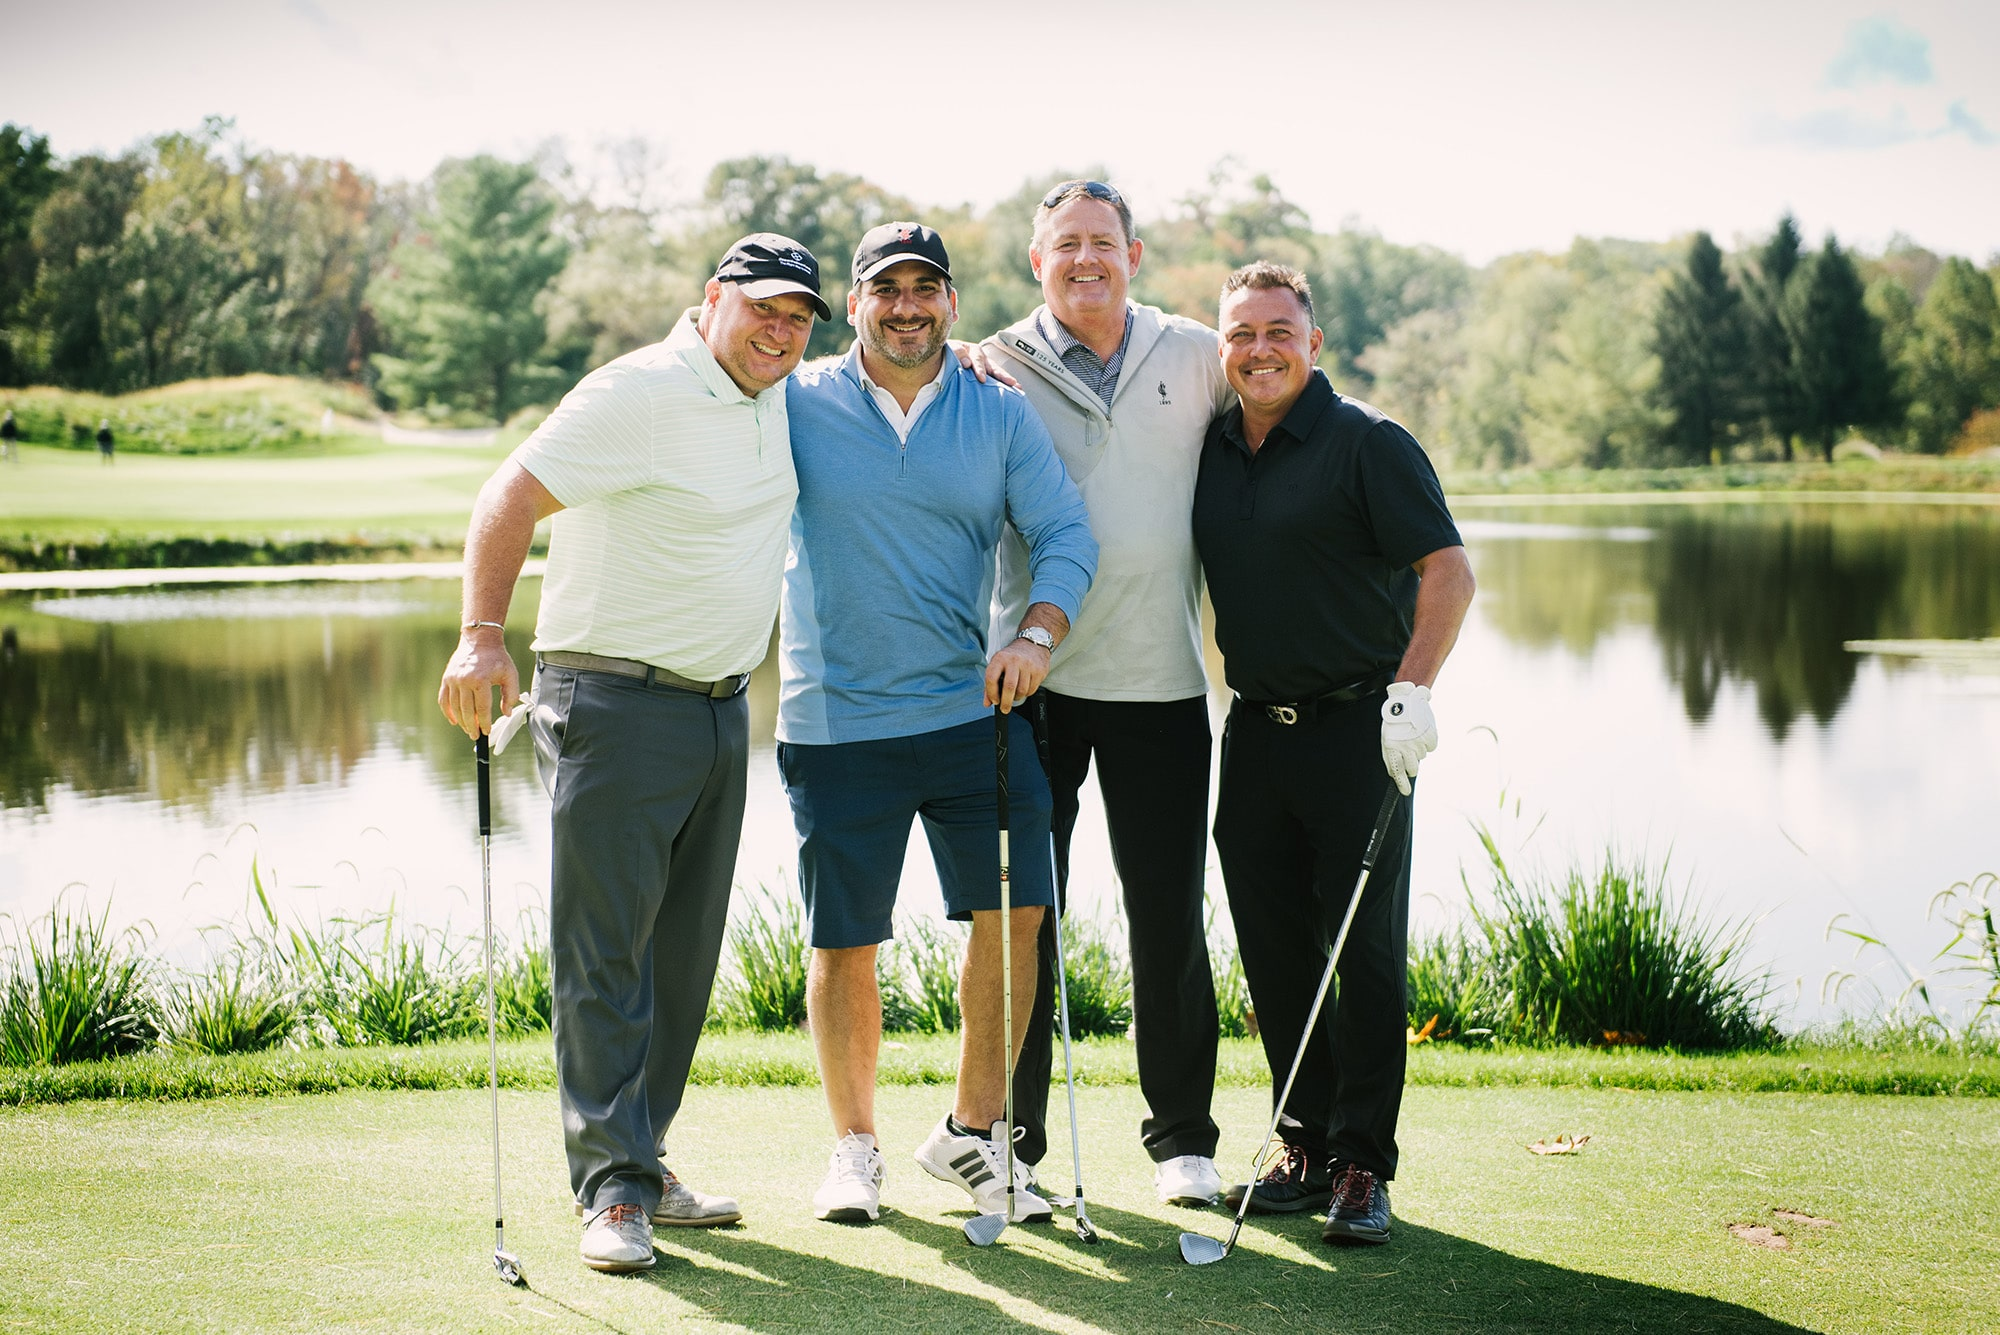 On October 5th, 2020 Community Options, Inc. will host its golf outing at TPC Jasna Polana in Princeton, New Jersey.